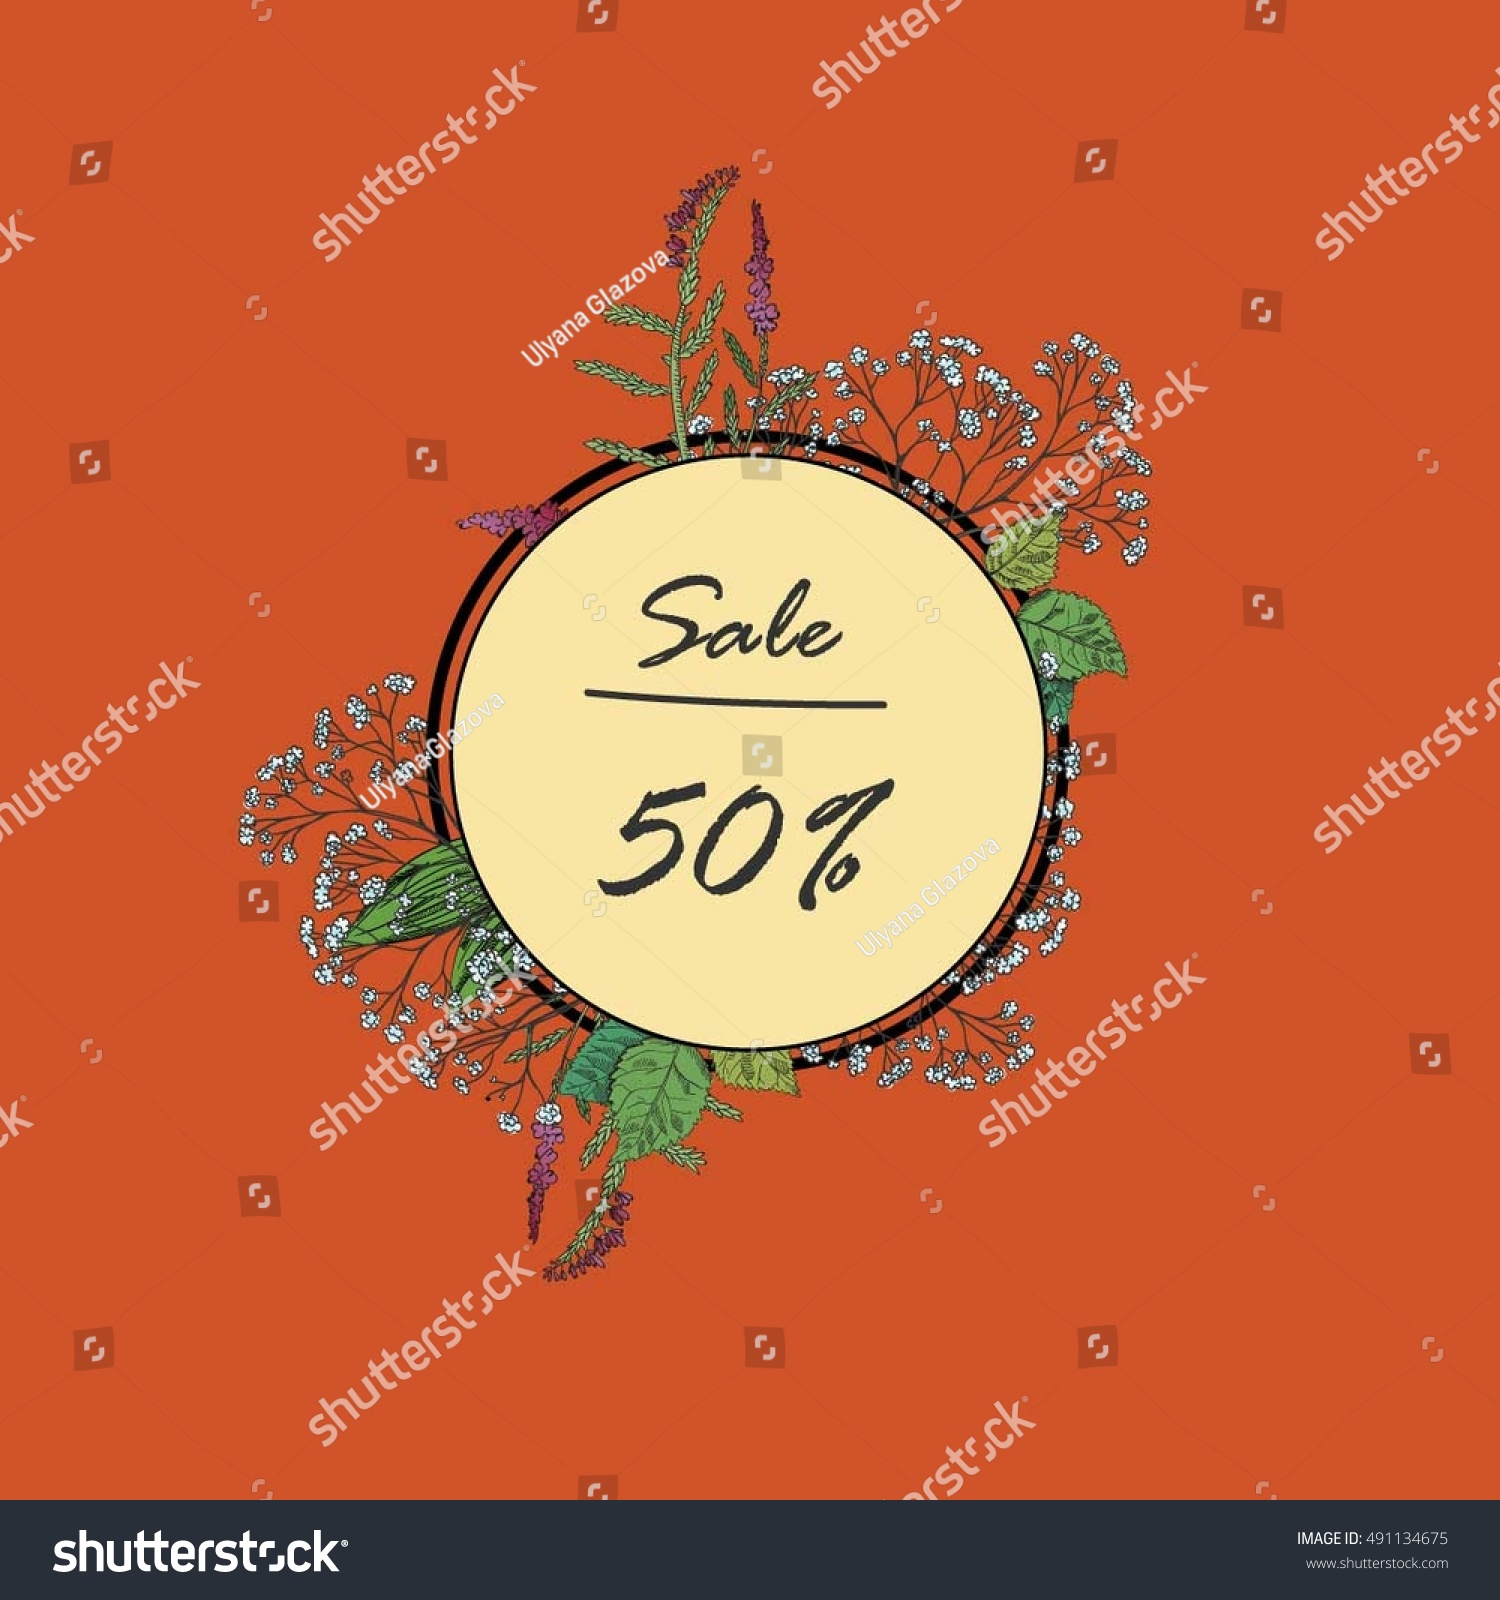 Vintage Floral Vector Discount Card Nature Stock Vector (Royalty ...